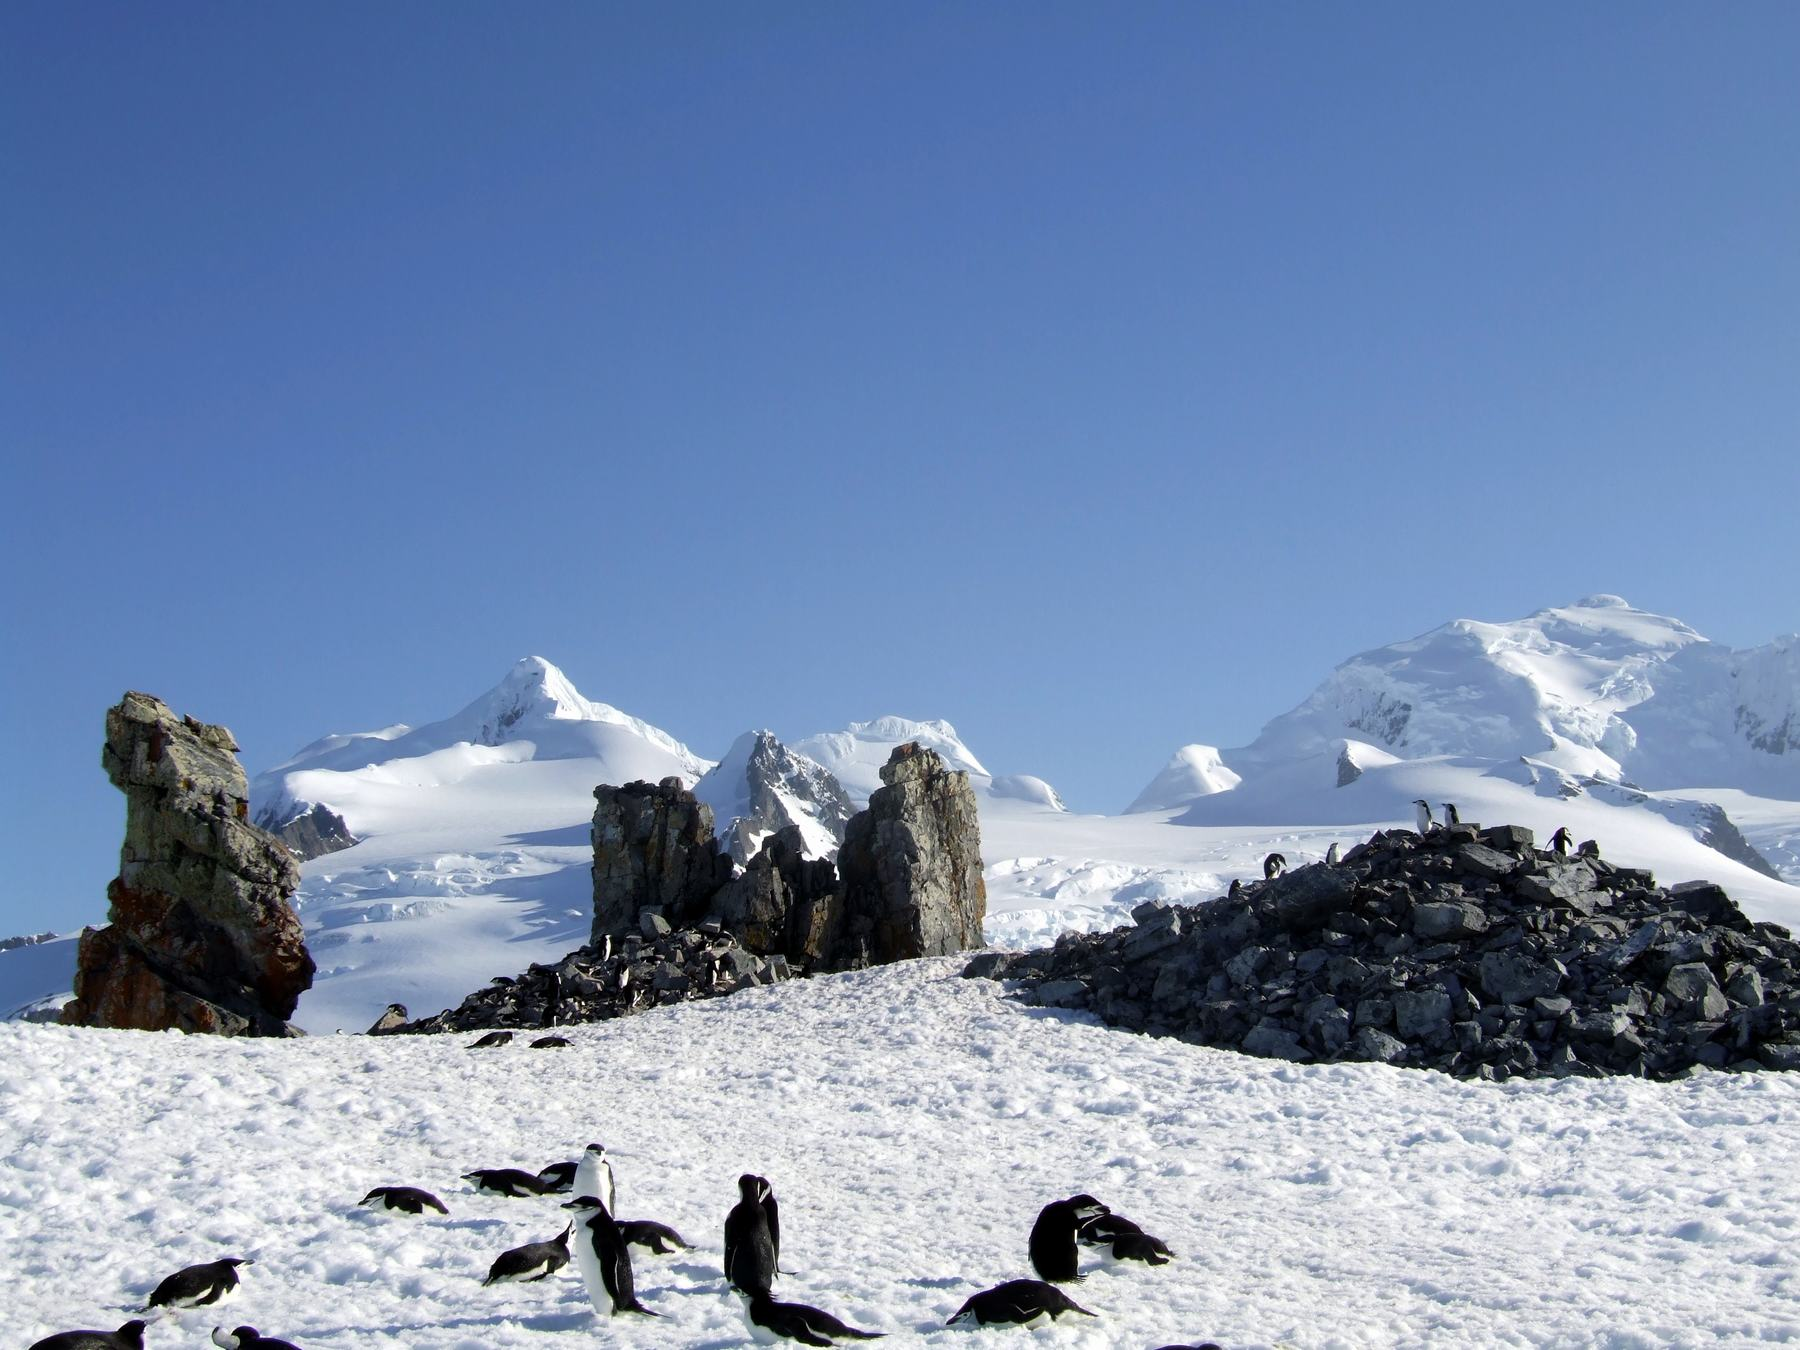 Antarctica expedition with the Anne-Margaretha